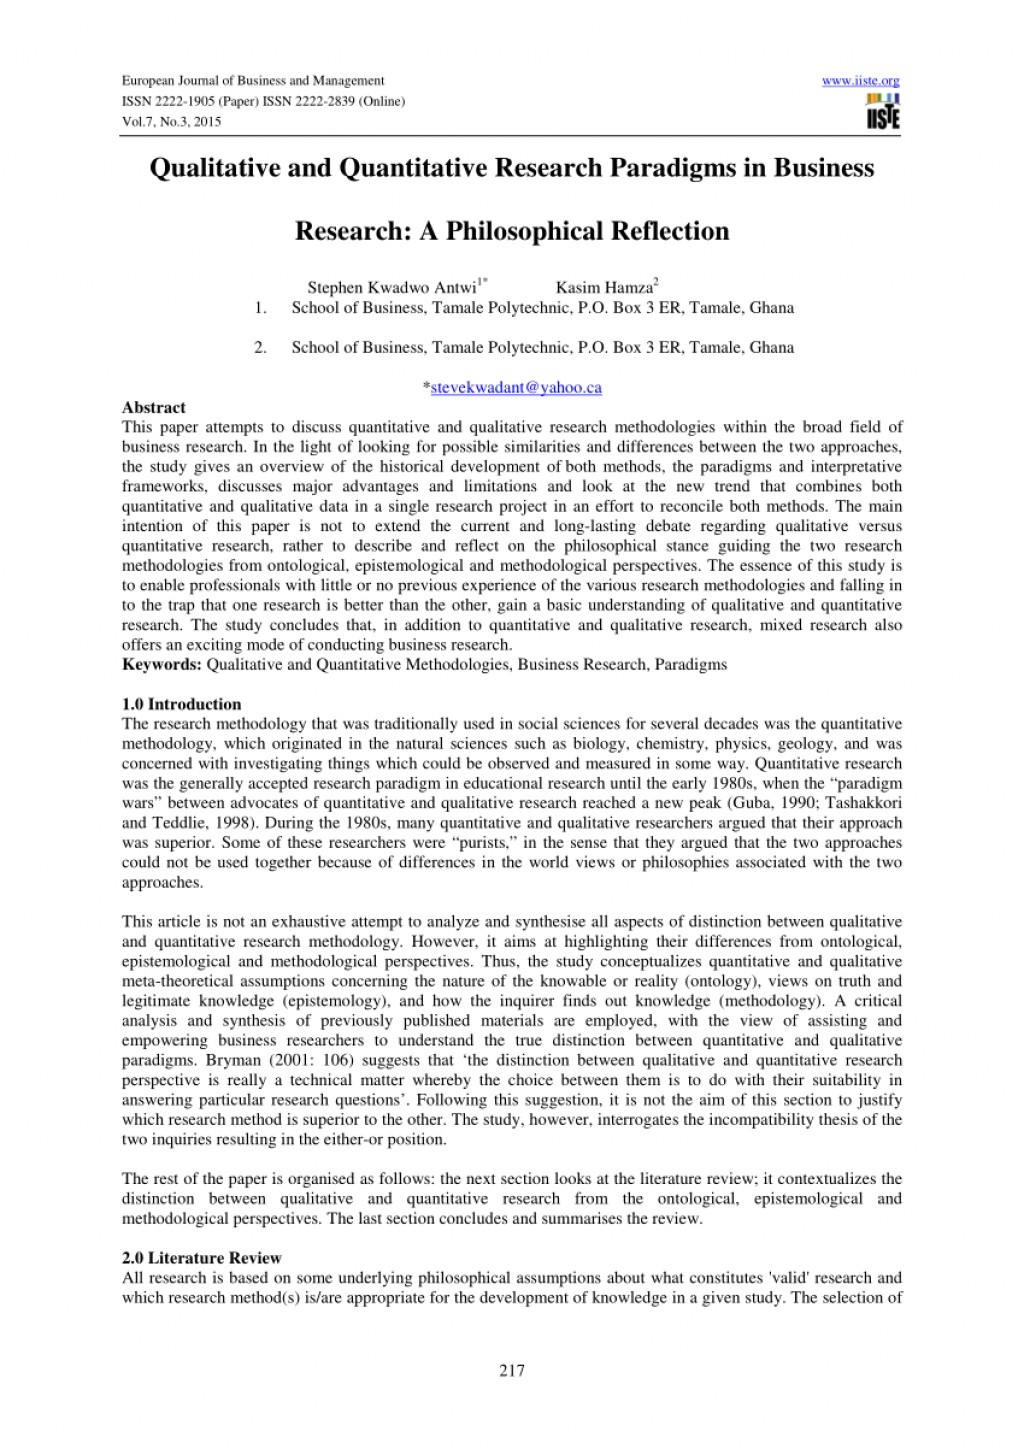 002 Qualitative Research Paper Example Help Amazing A How To Critique Examples Chapter 1 Large